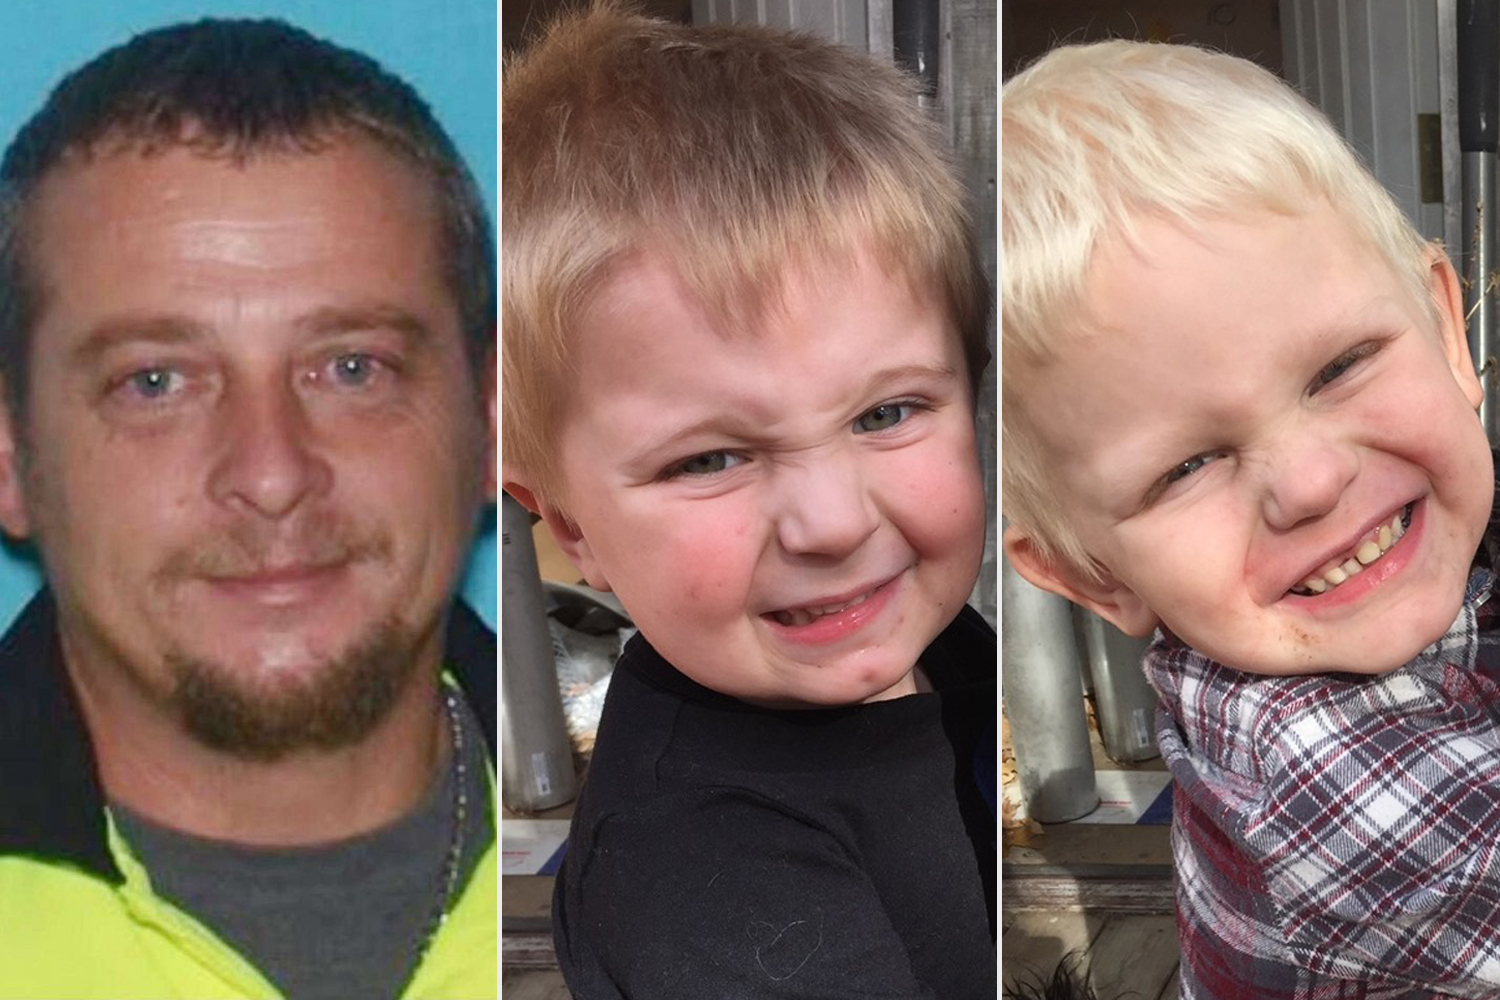 40 year old Darrell Peak and his two children, 3 year old Mayson Peak and 4 year old Kaiden Peak.